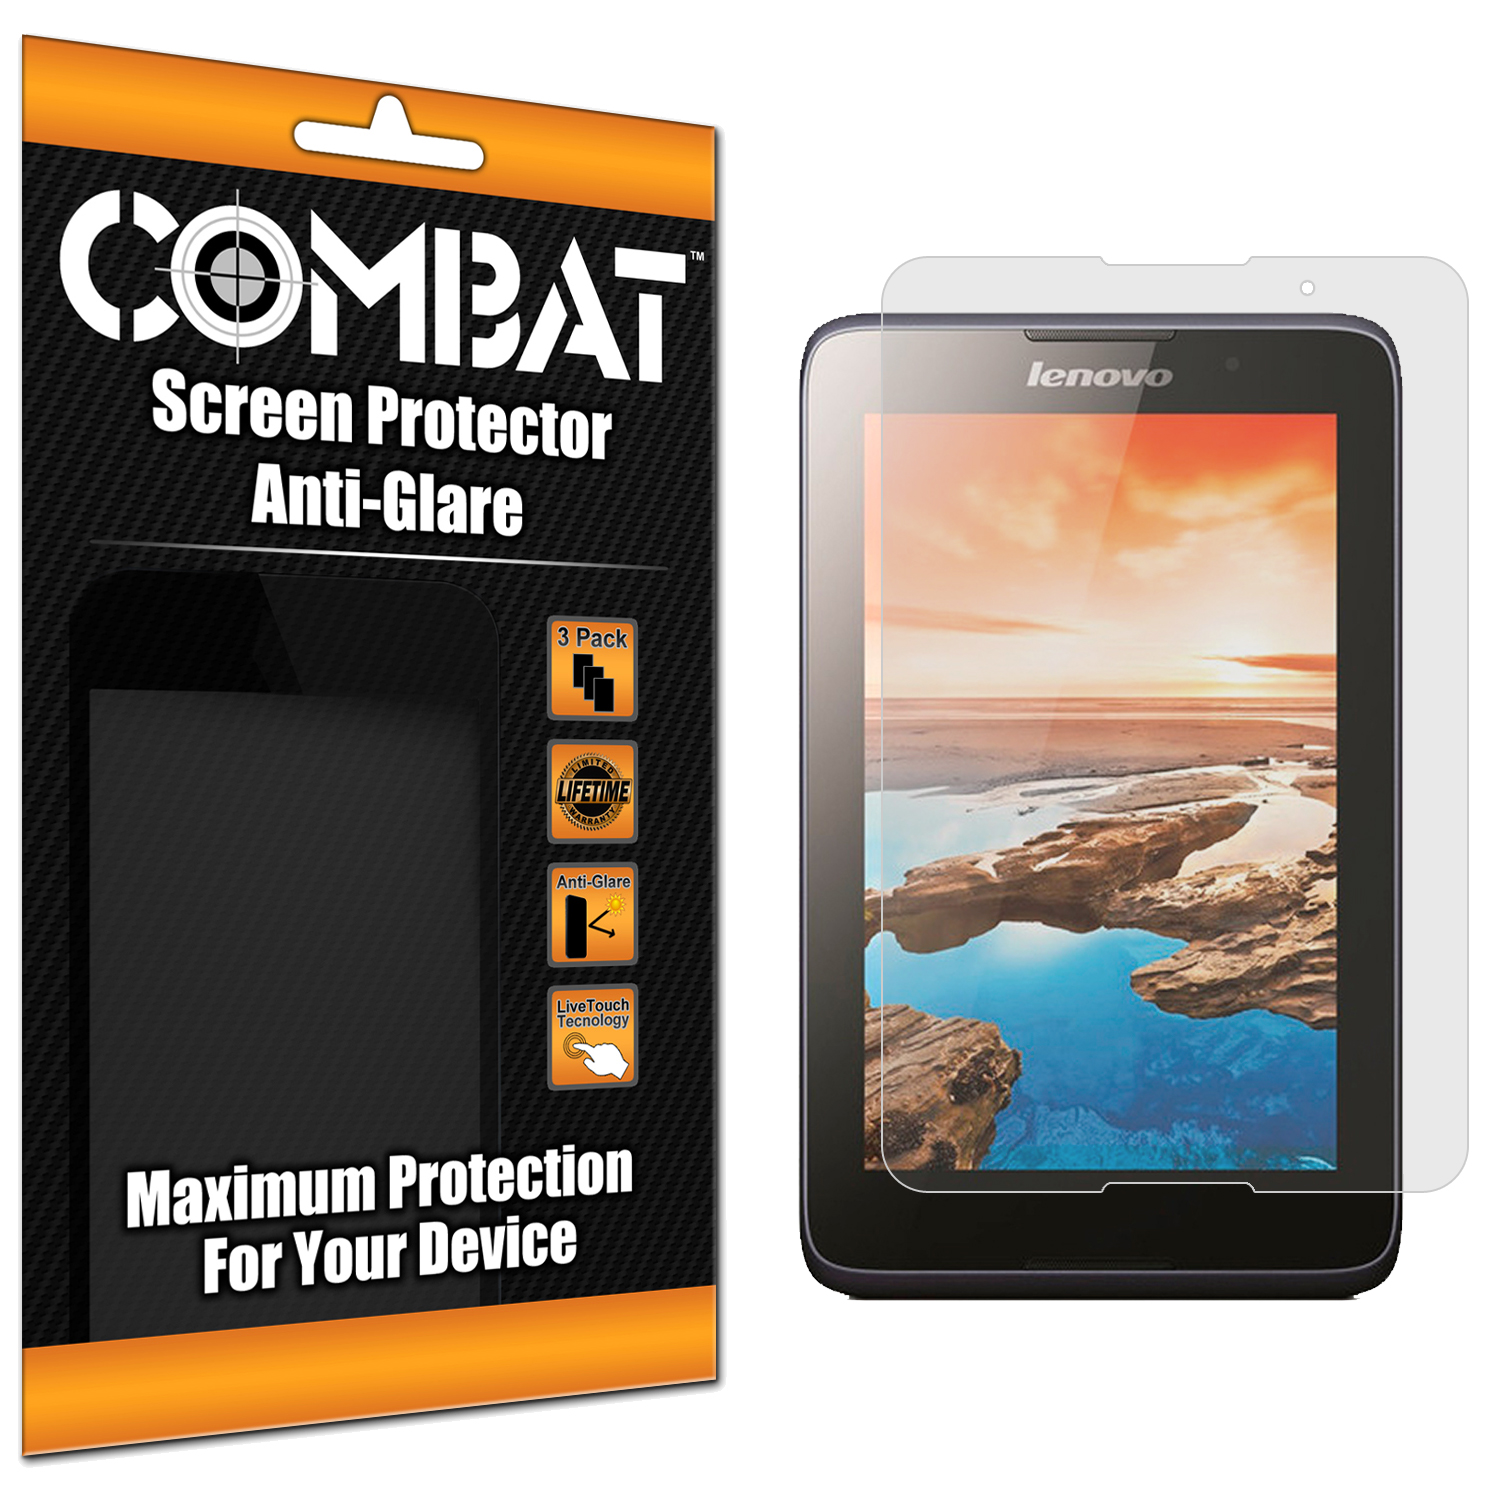 Lenovo Tab A7-50 Combat 3 Pack Anti-Glare Matte Screen Protector